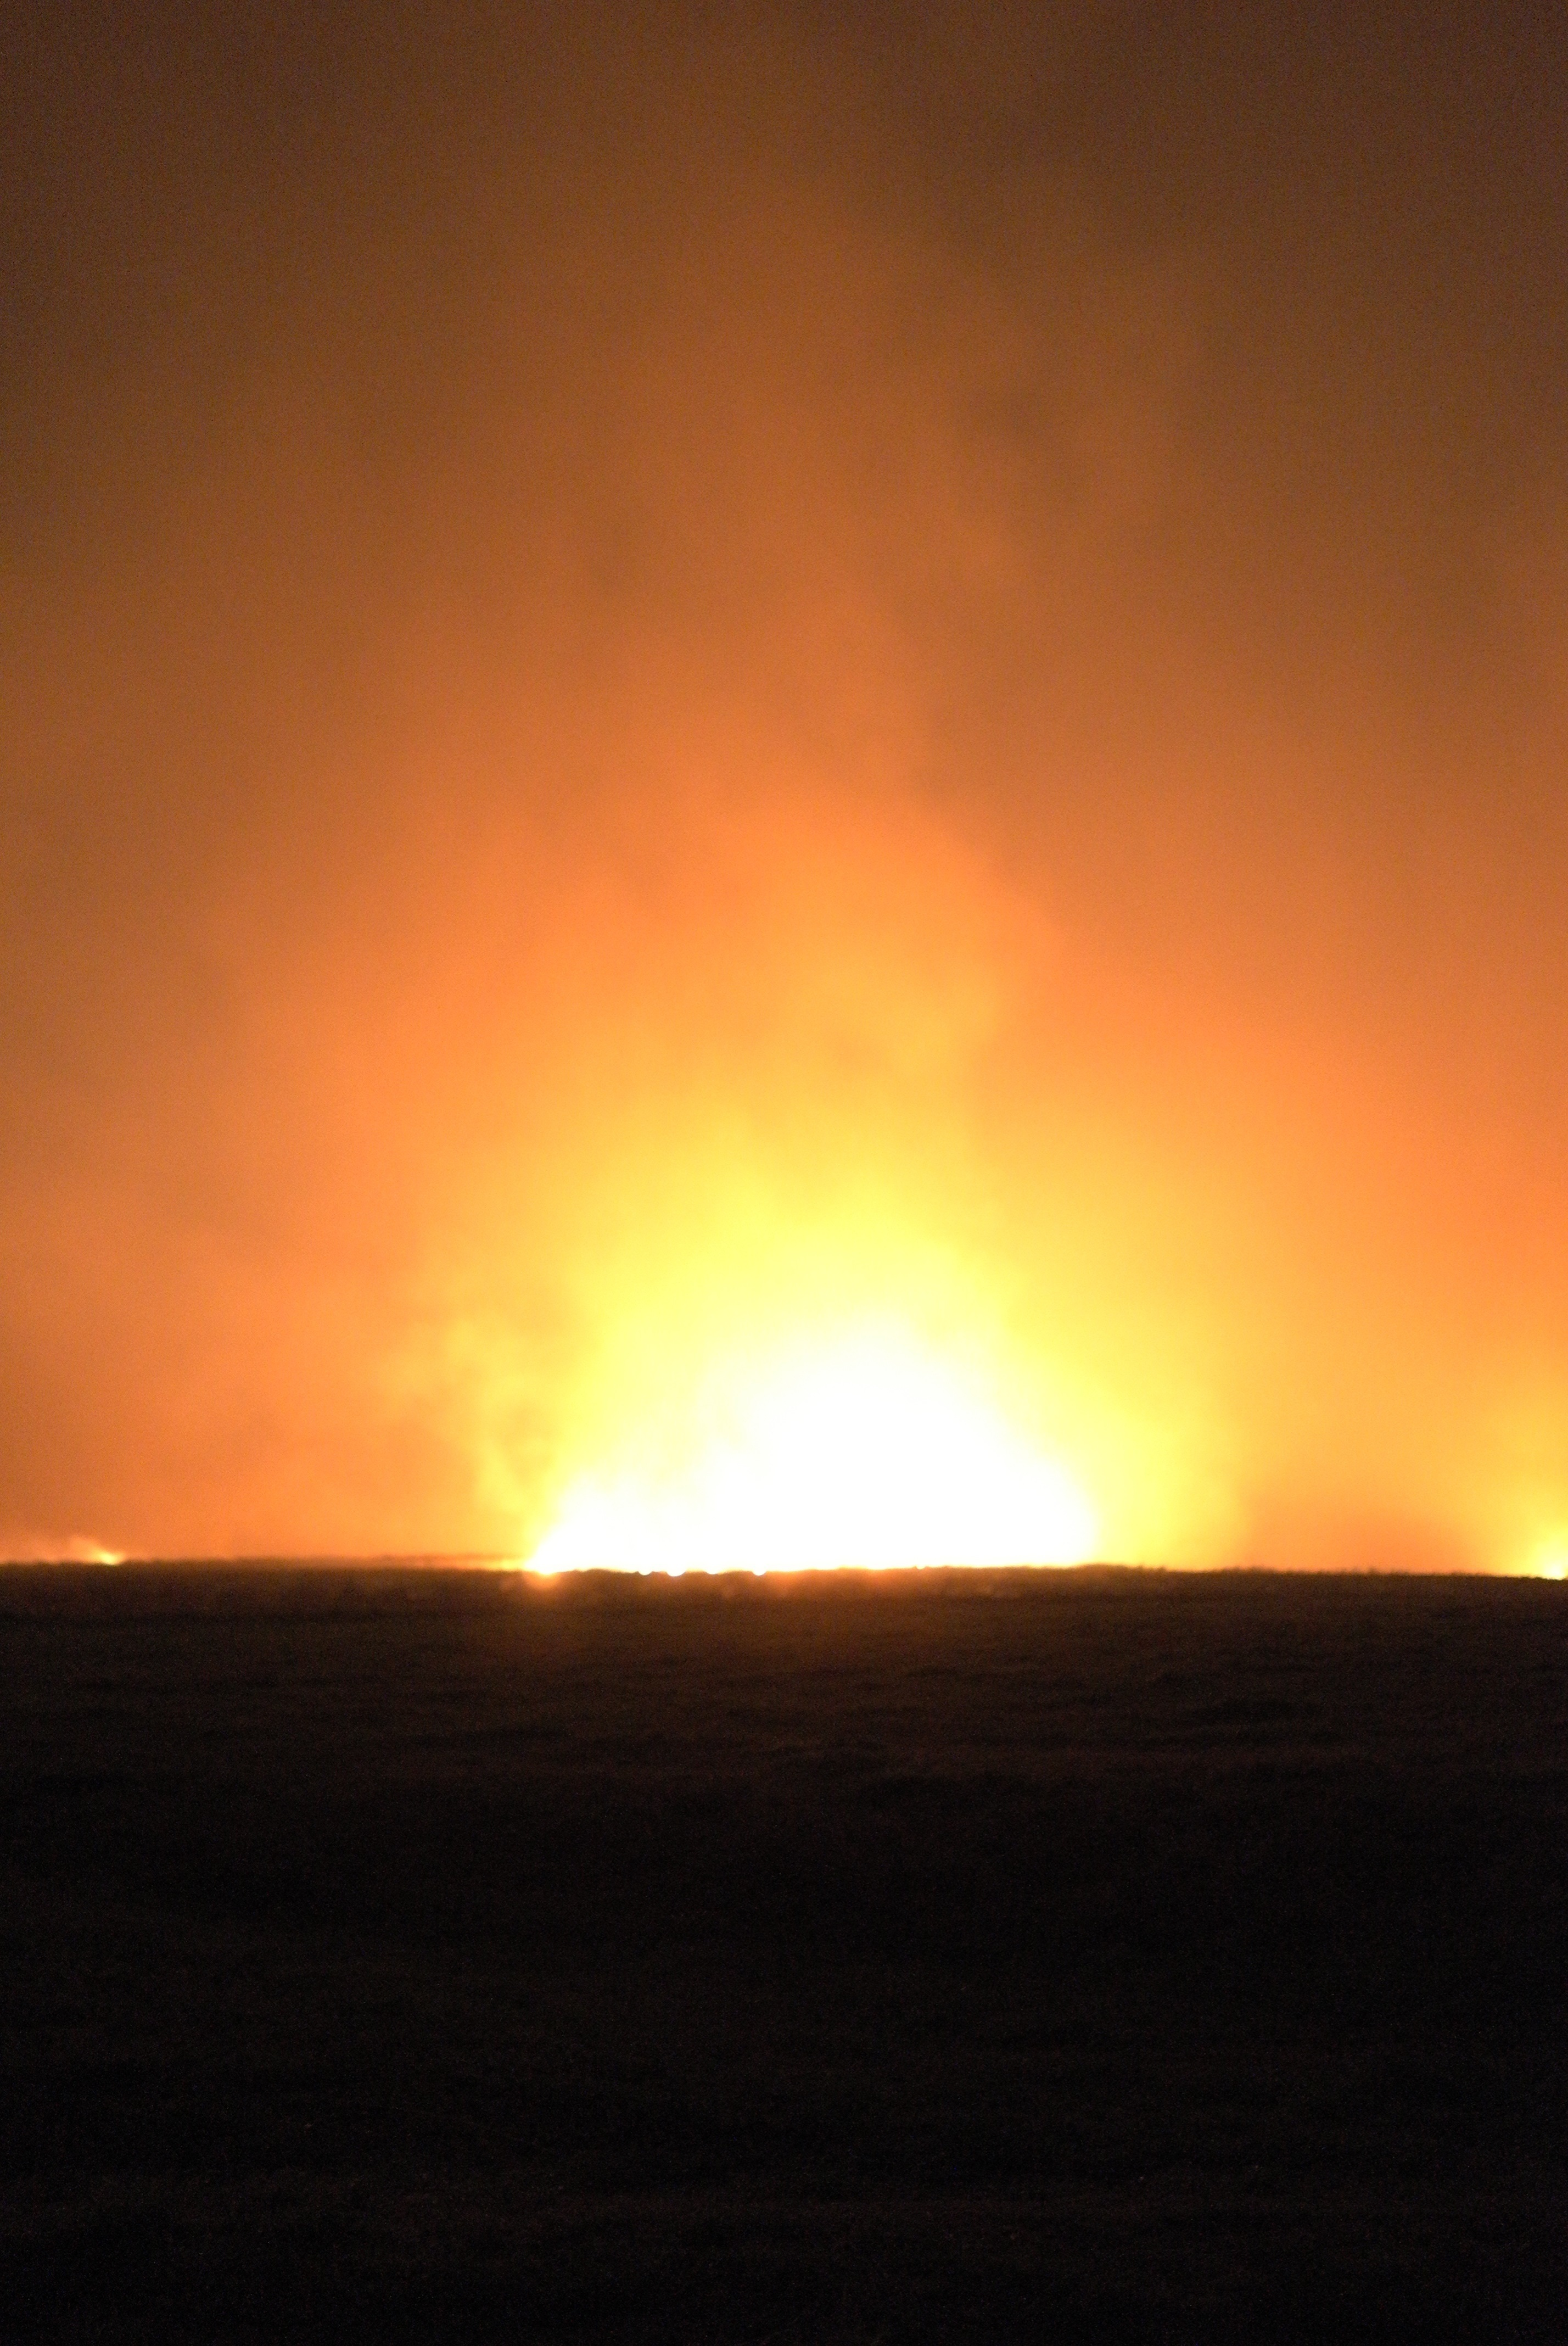 An image of a prairie fire at night, from a distance